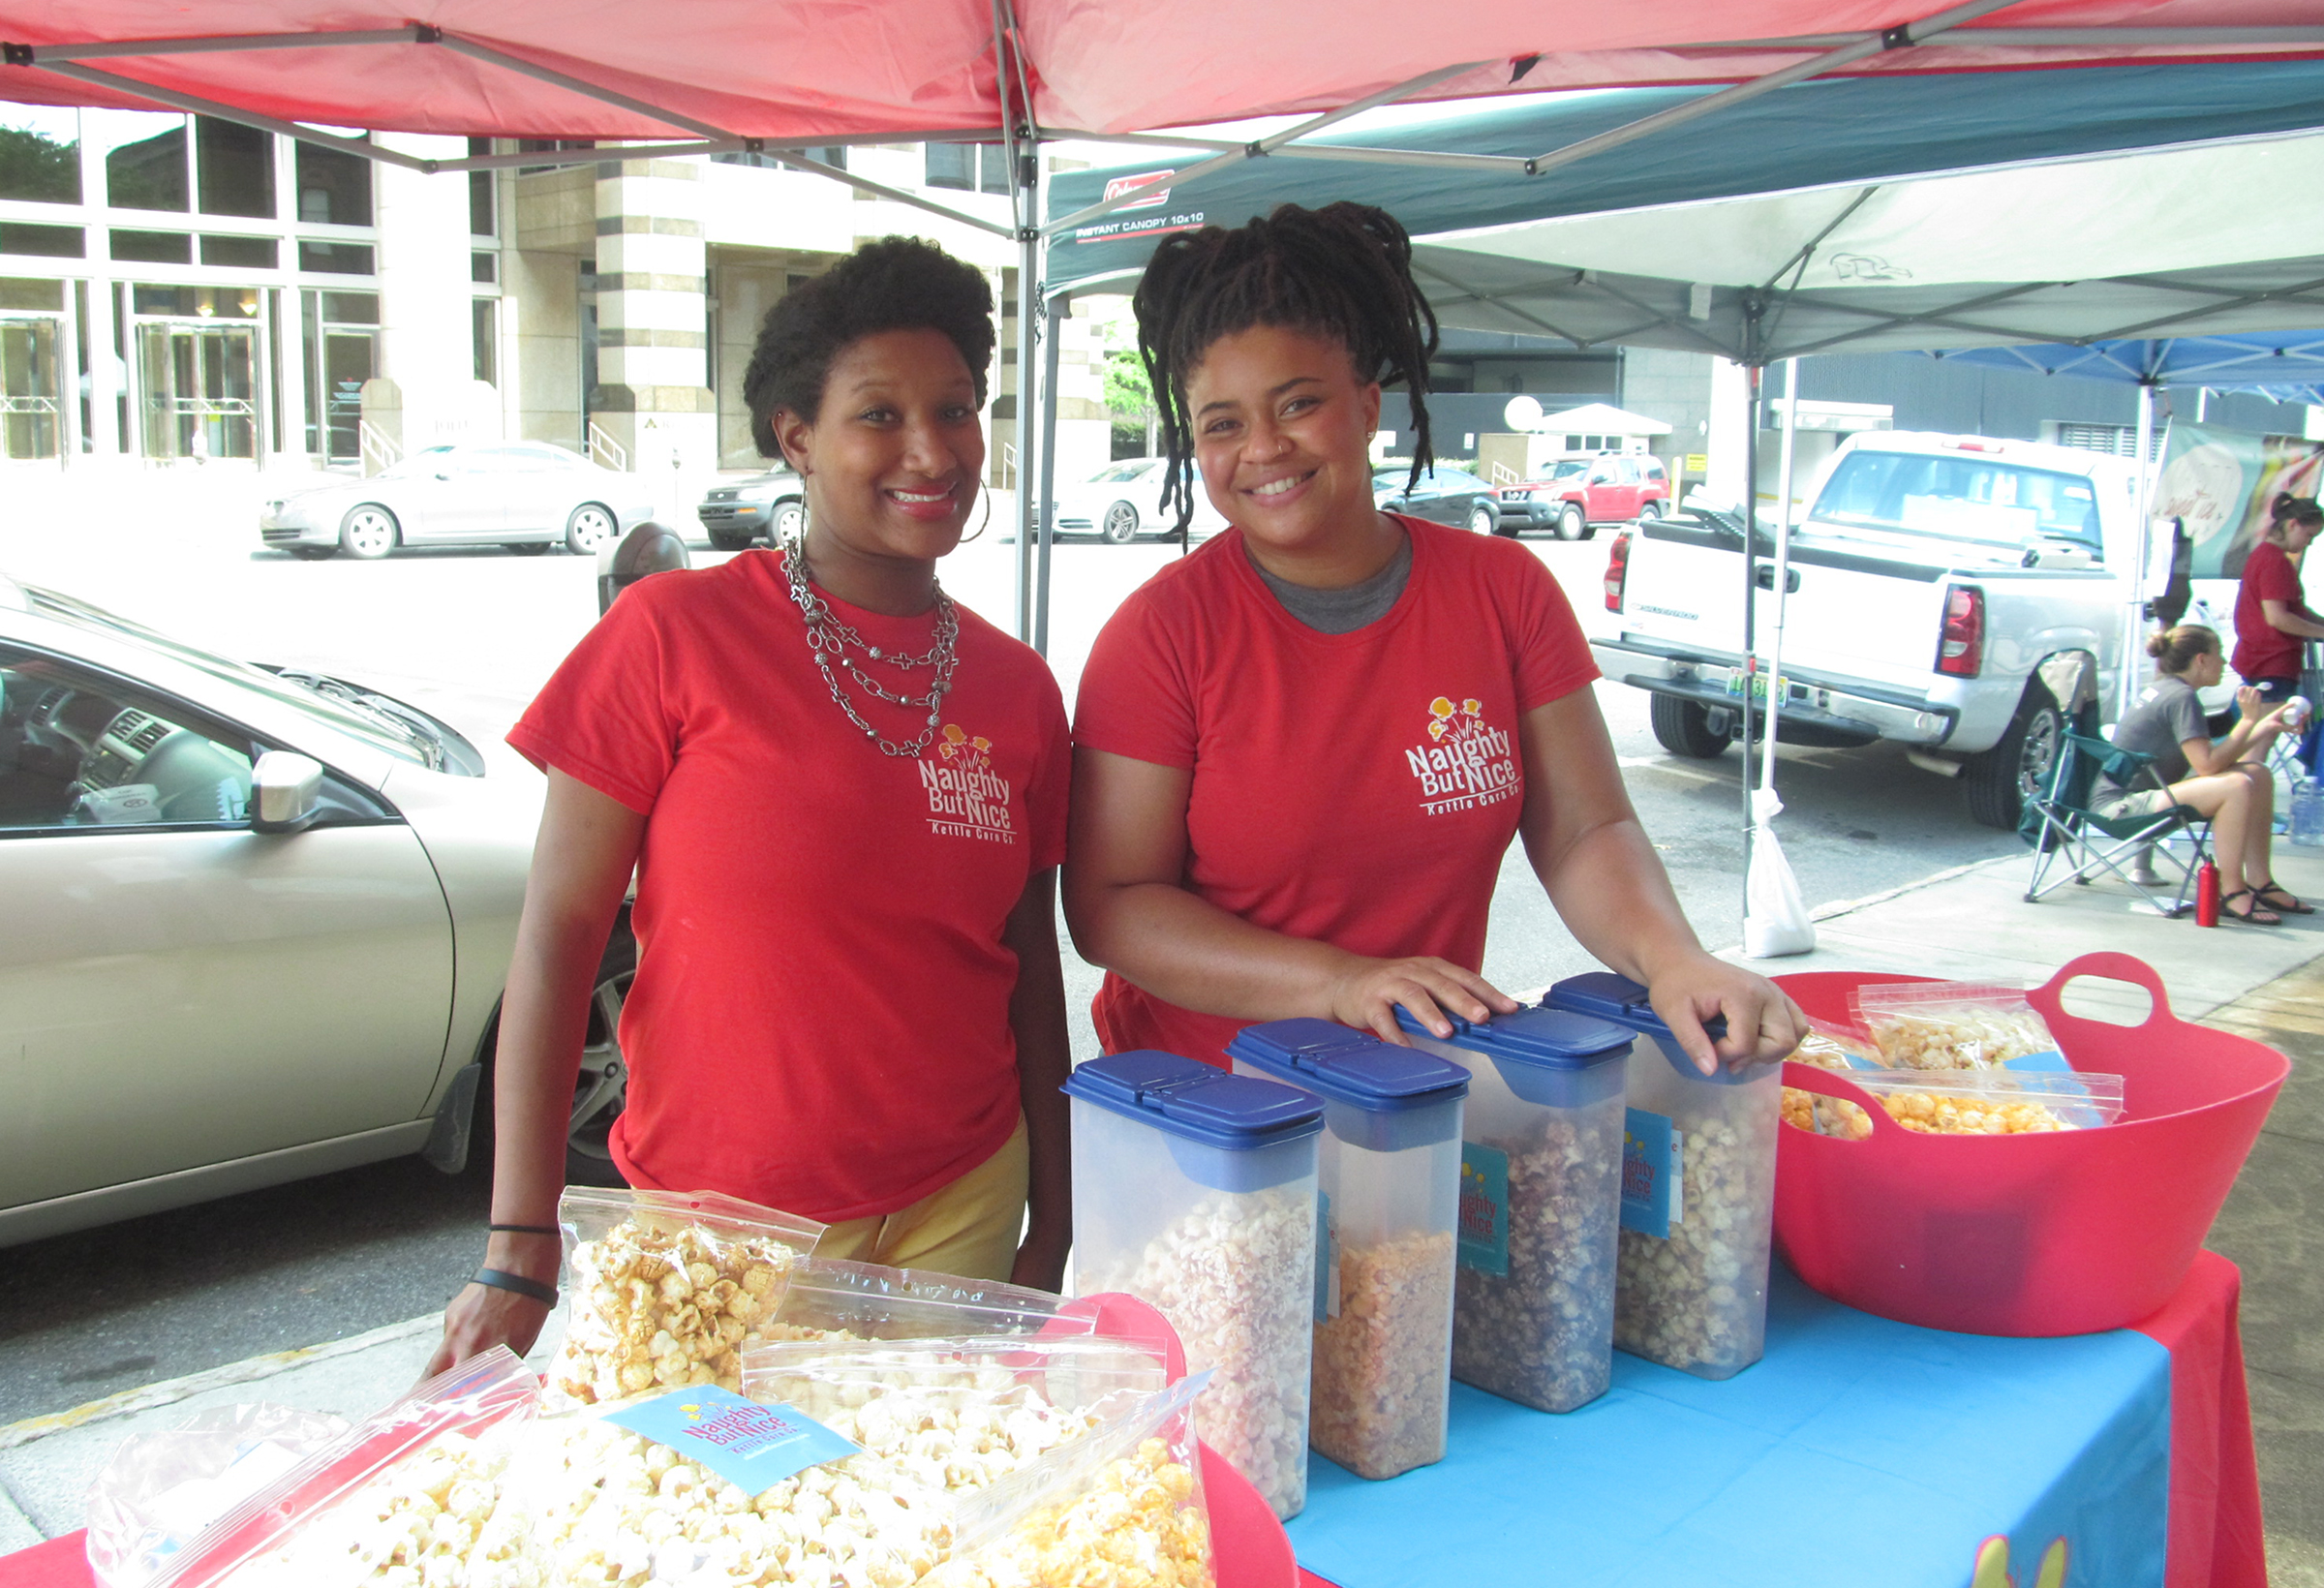 Tanesha Sims-Summers and Tiffany Turner went through the CO.STARTERS program when they began their company, Naughty But Nice A Kettle Corn Co. two years ago. The duo sell their flavored kettle corn at farmers' markets throughout the city. (Kathryn Sesser-Dorné, special to The Times)